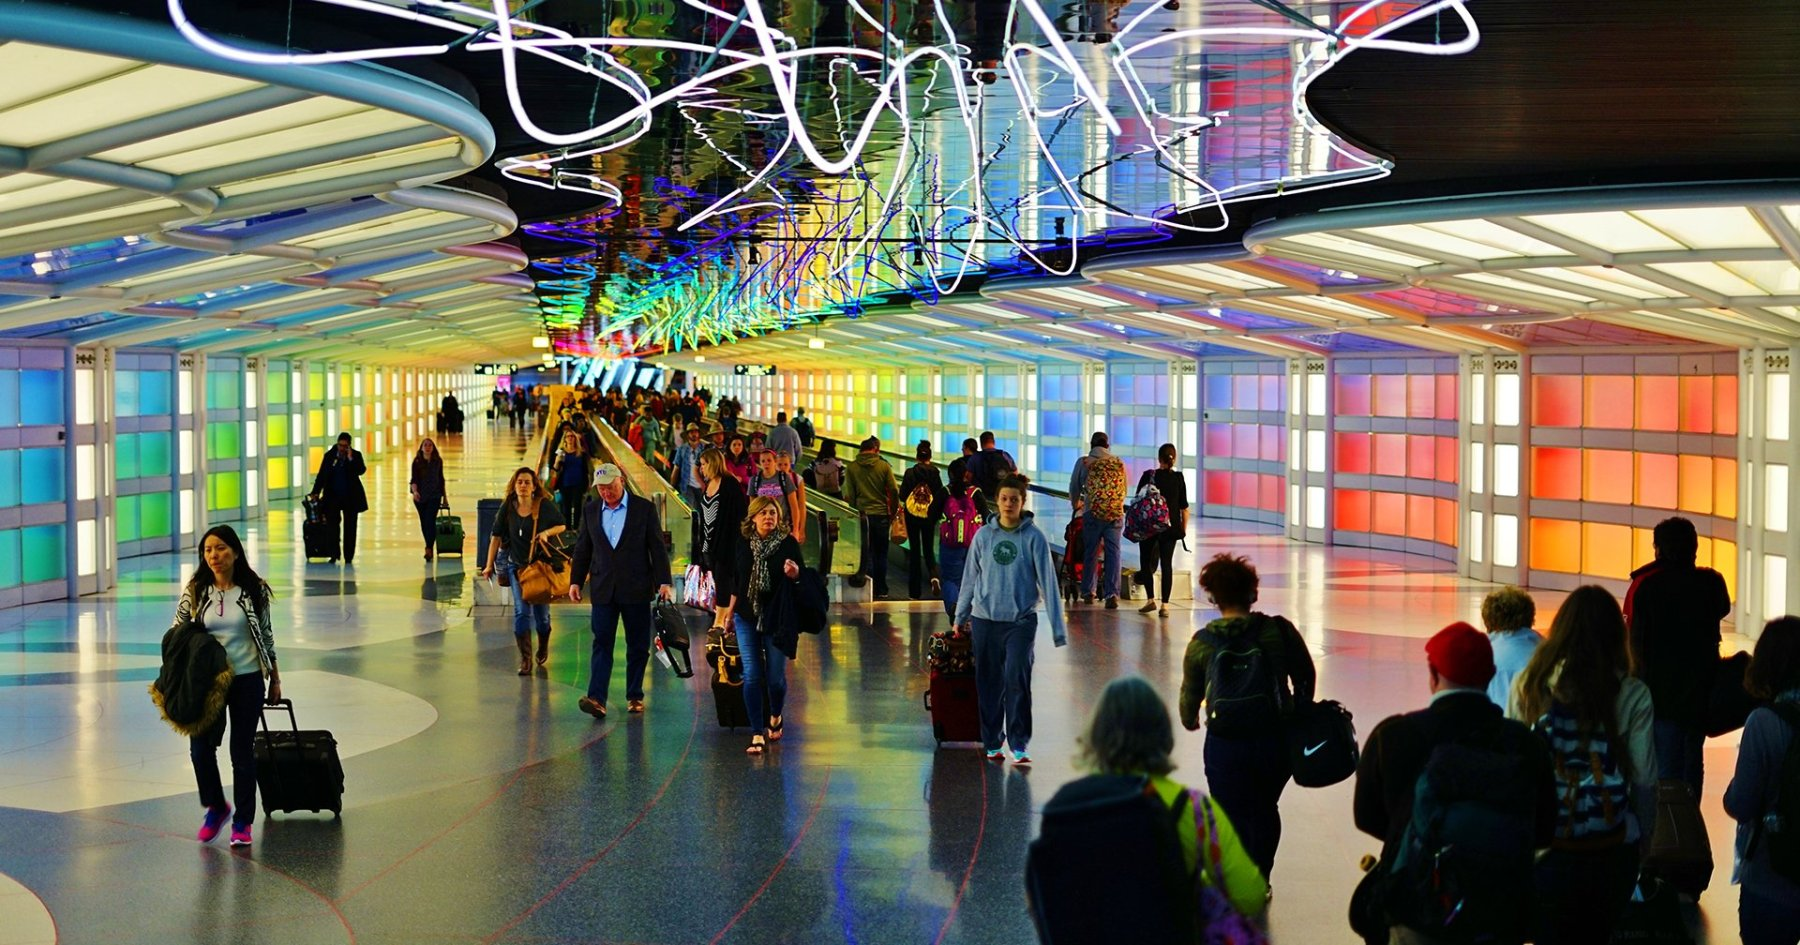 Nine Ways to Make O'Hare Suck Less